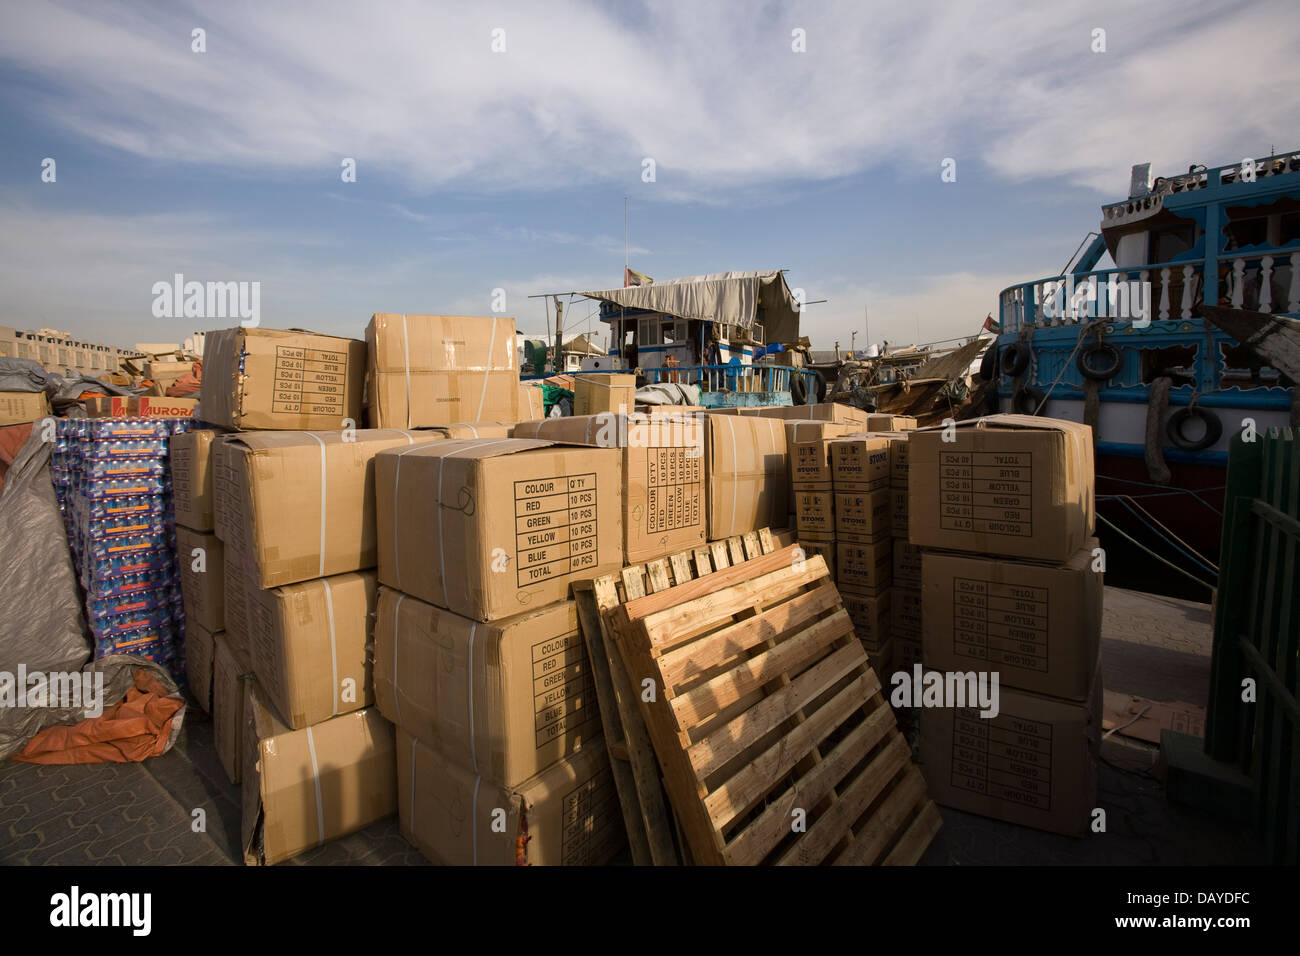 Goods being unloaded and loaded for transport, Dubai, United Arab